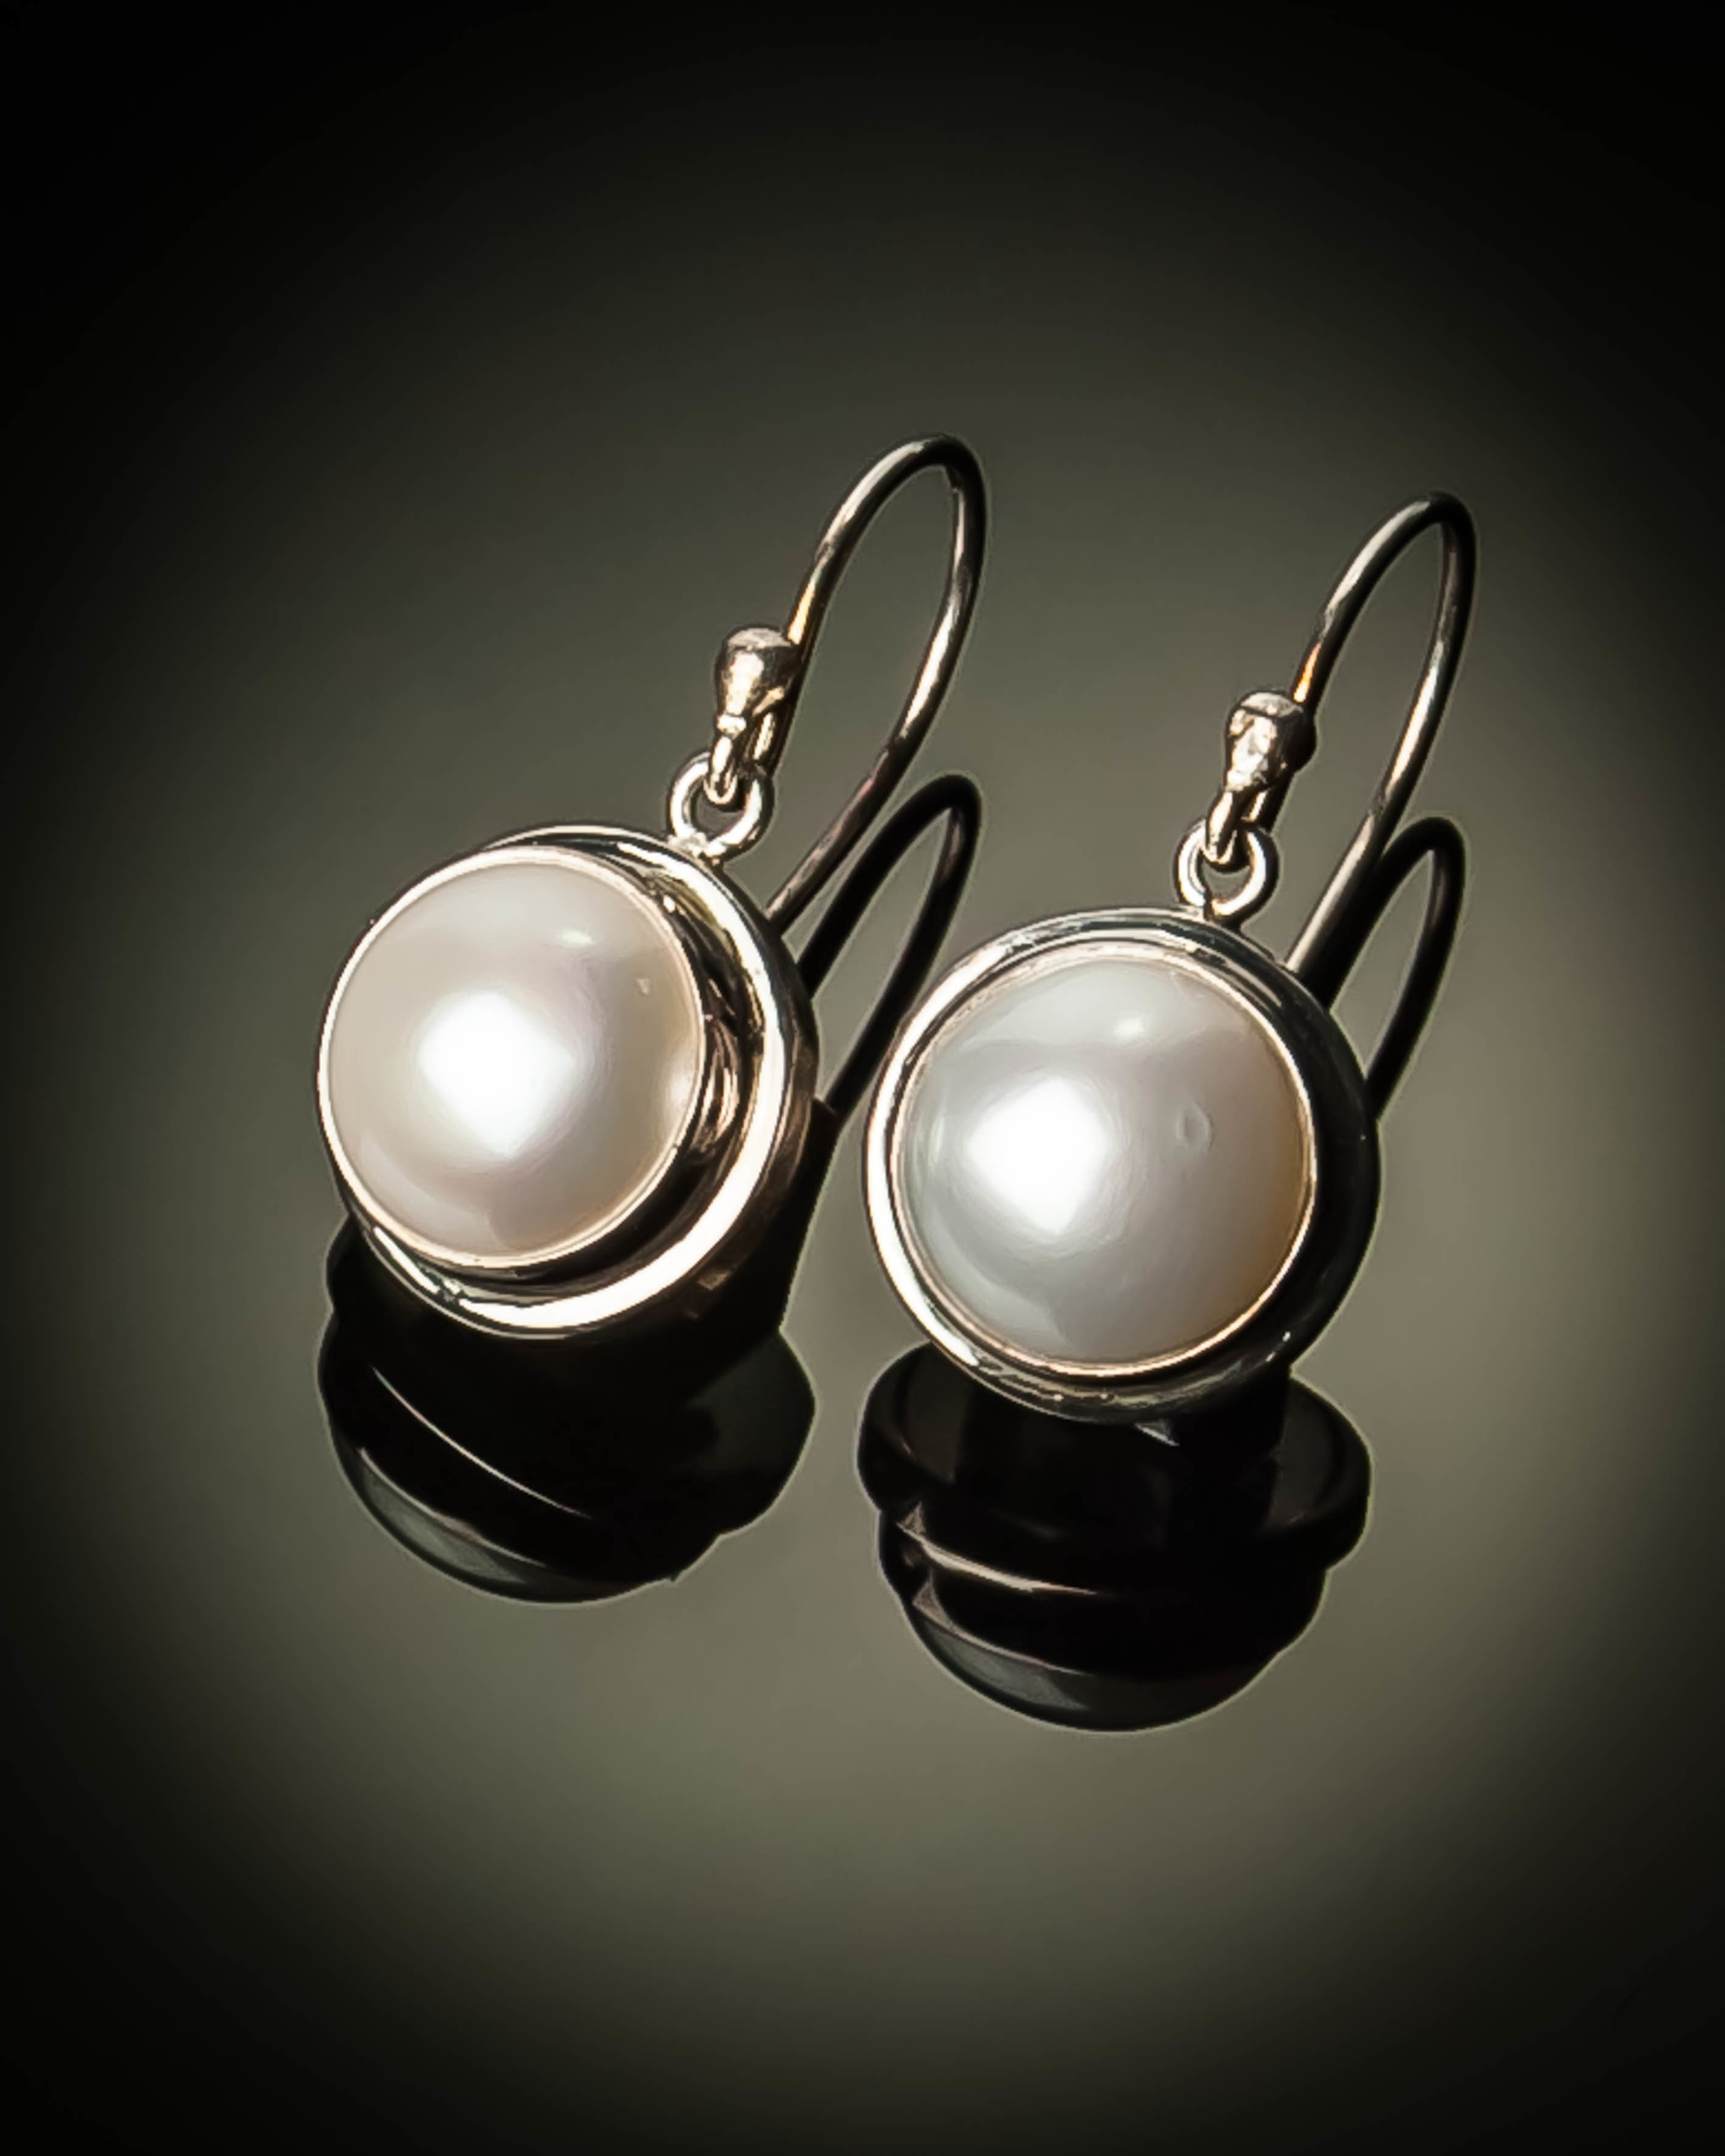 Mabe Pearl Sterling Silver Small Earrings ER-09066